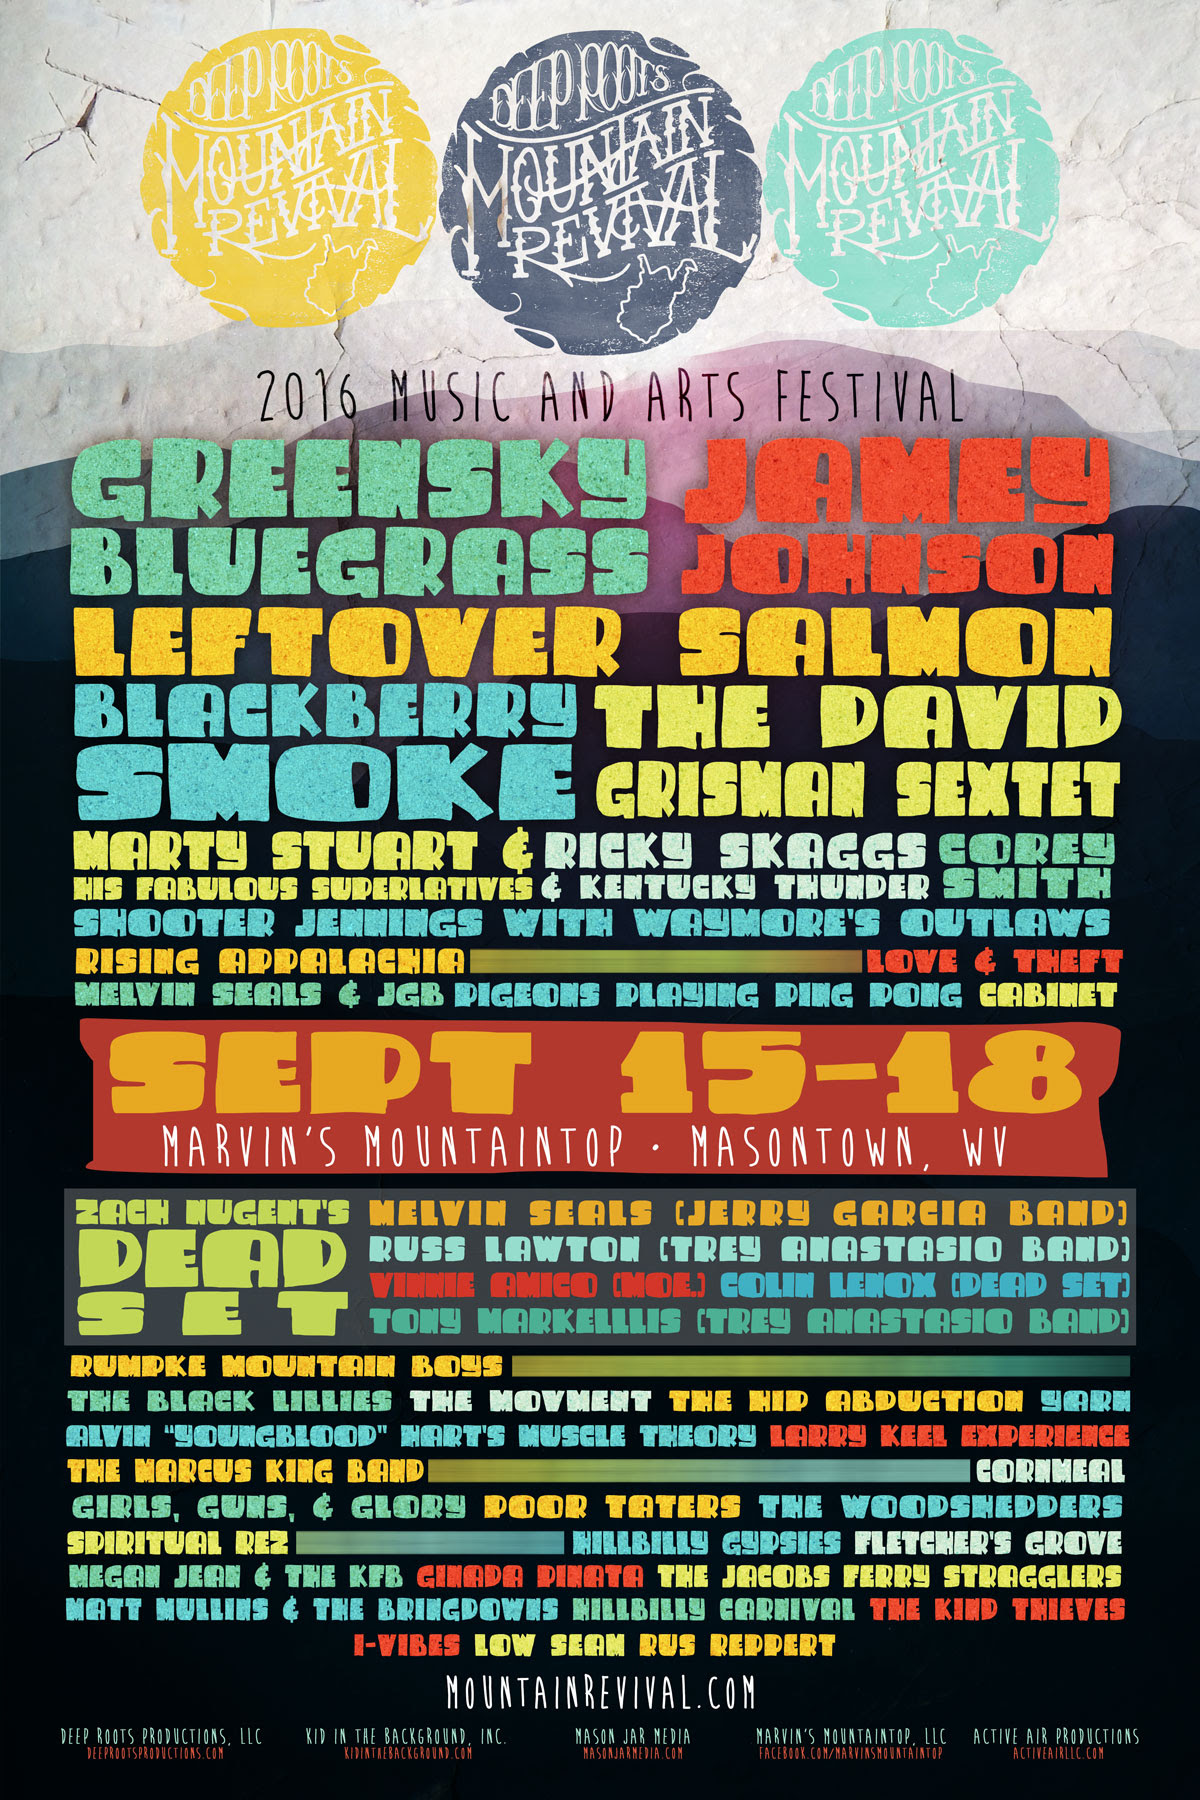 Deep Roots Mountain Revival featuring Jamey Johnson, Blackberry Smoke and more. Photo provided.